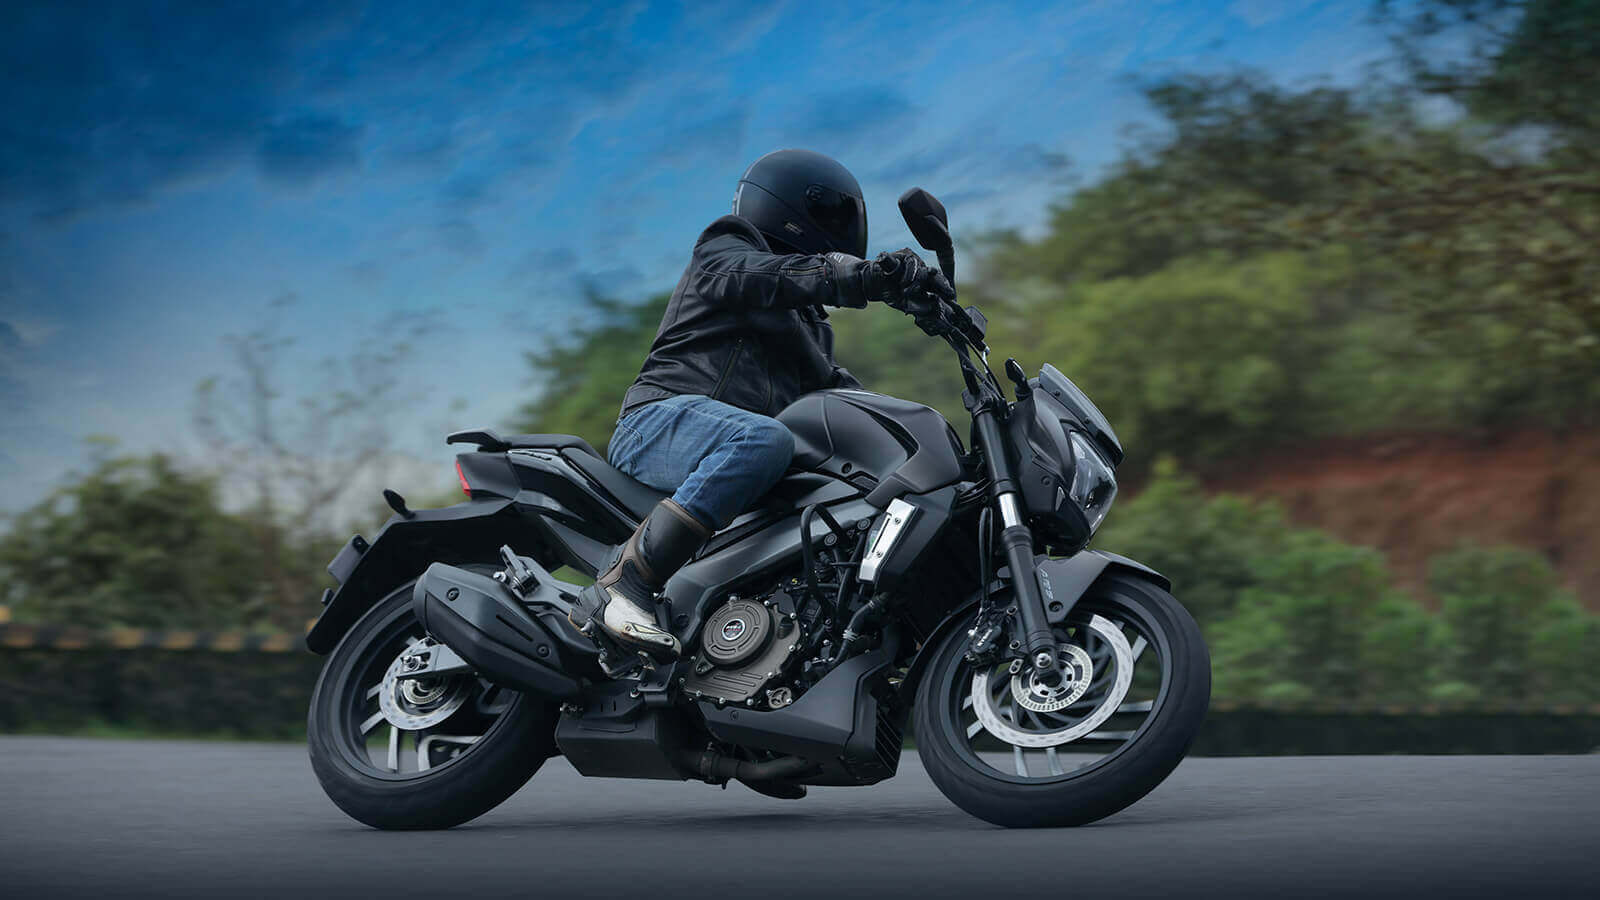 Bajaj Dominar 250 Price, Mileage, Specifications, Colors, Top Speed and Service Schedule